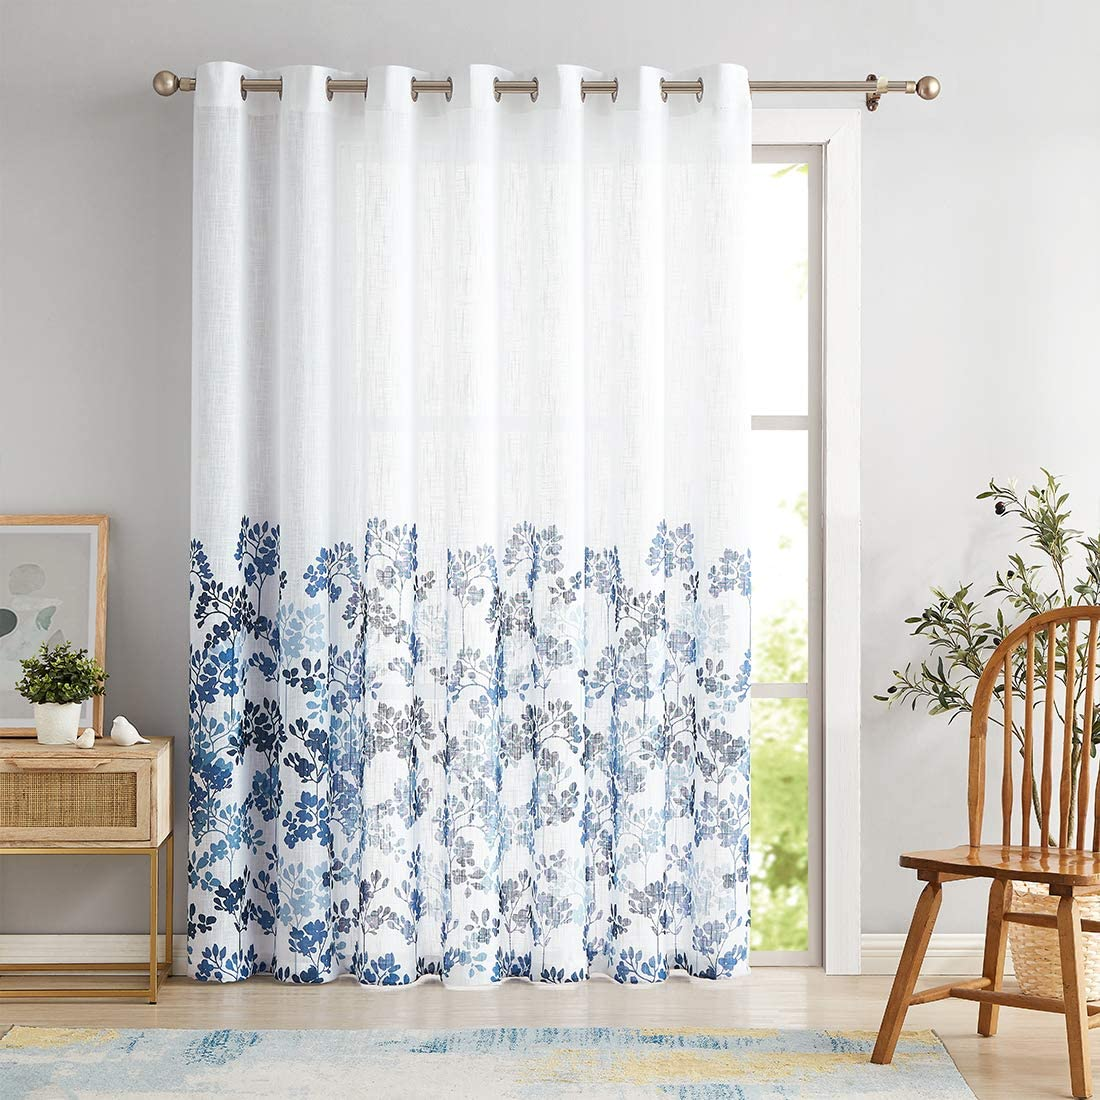 Metro Parlor Floral Sliding Door 100-inch for Extra Curtain Wide Direct store Deluxe